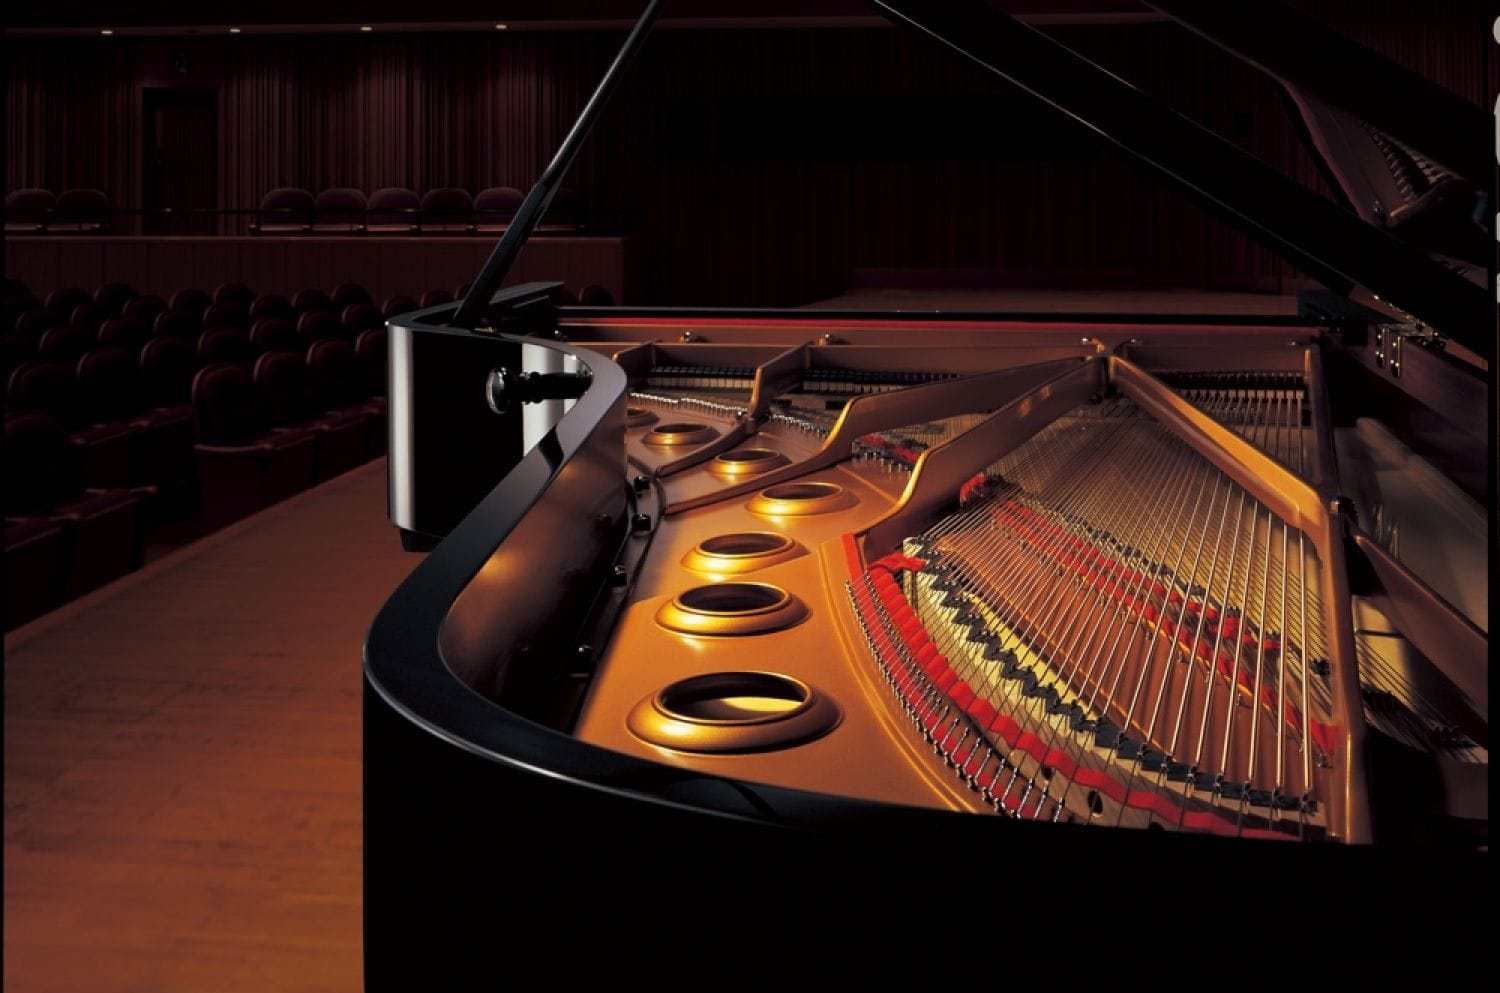 View of interior of a Yamaha concert grand on stage in an empty concert hall.